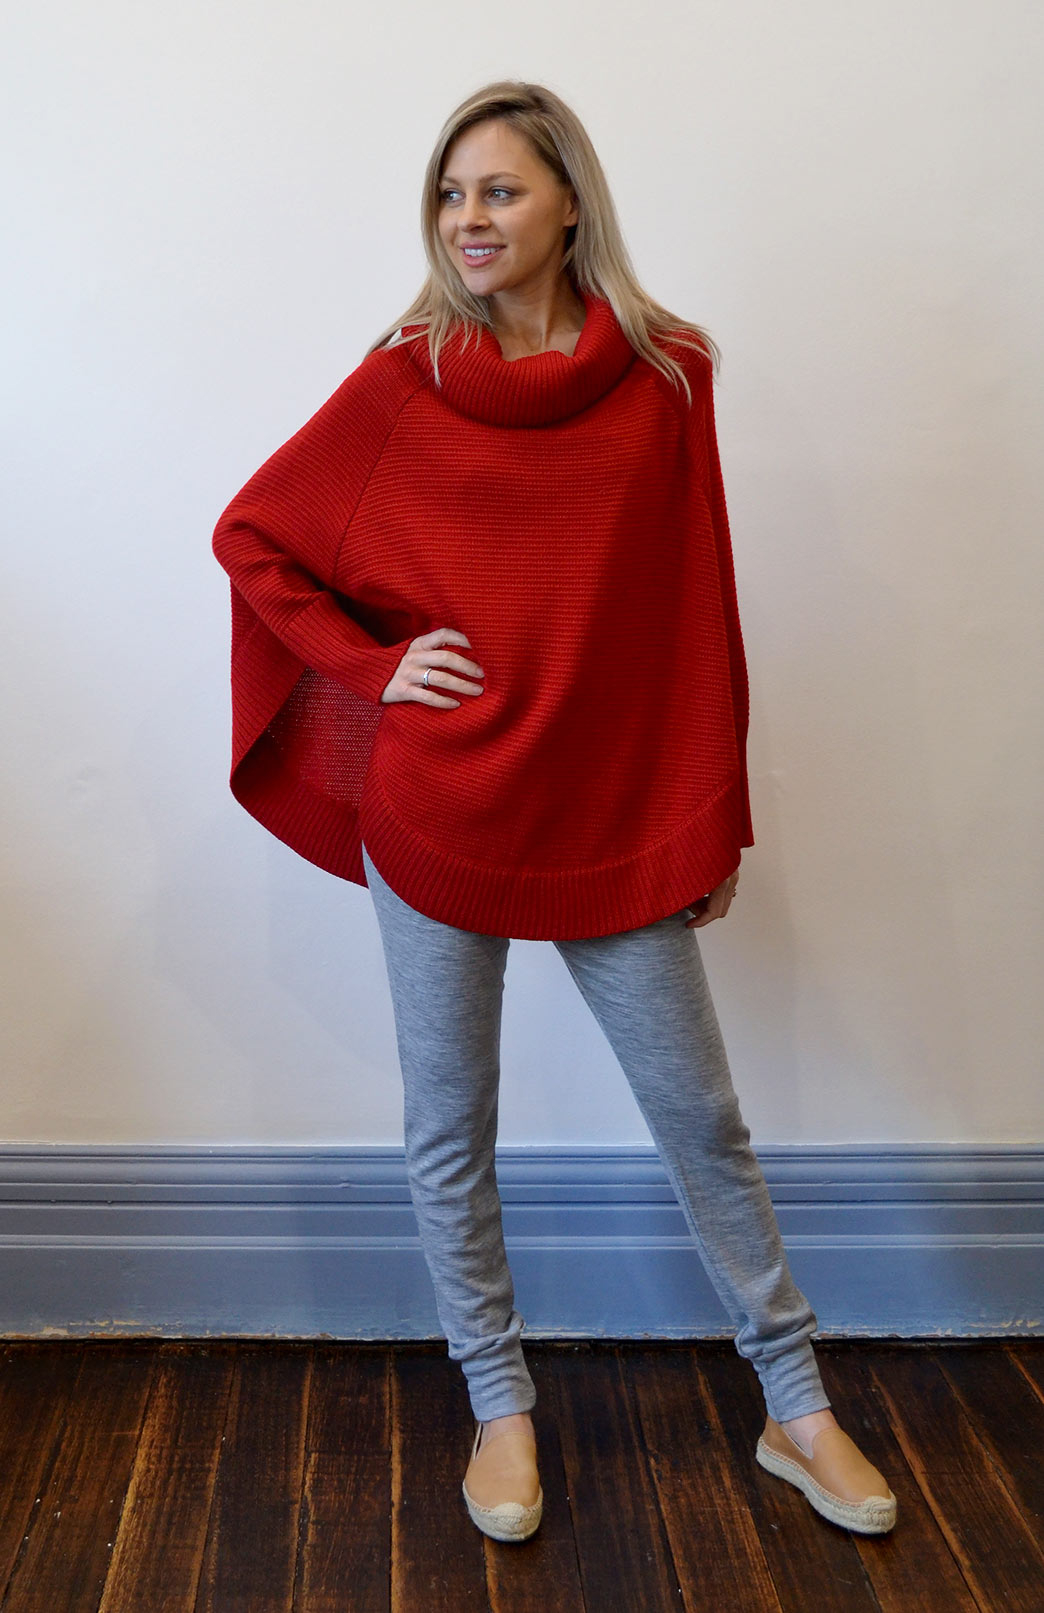 Chunky Merino Wool Cowl Neck Poncho With Sleeve - Women's Red Chunky Knit Merino Wool Winter Poncho - Smitten Merino Tasmania Australia